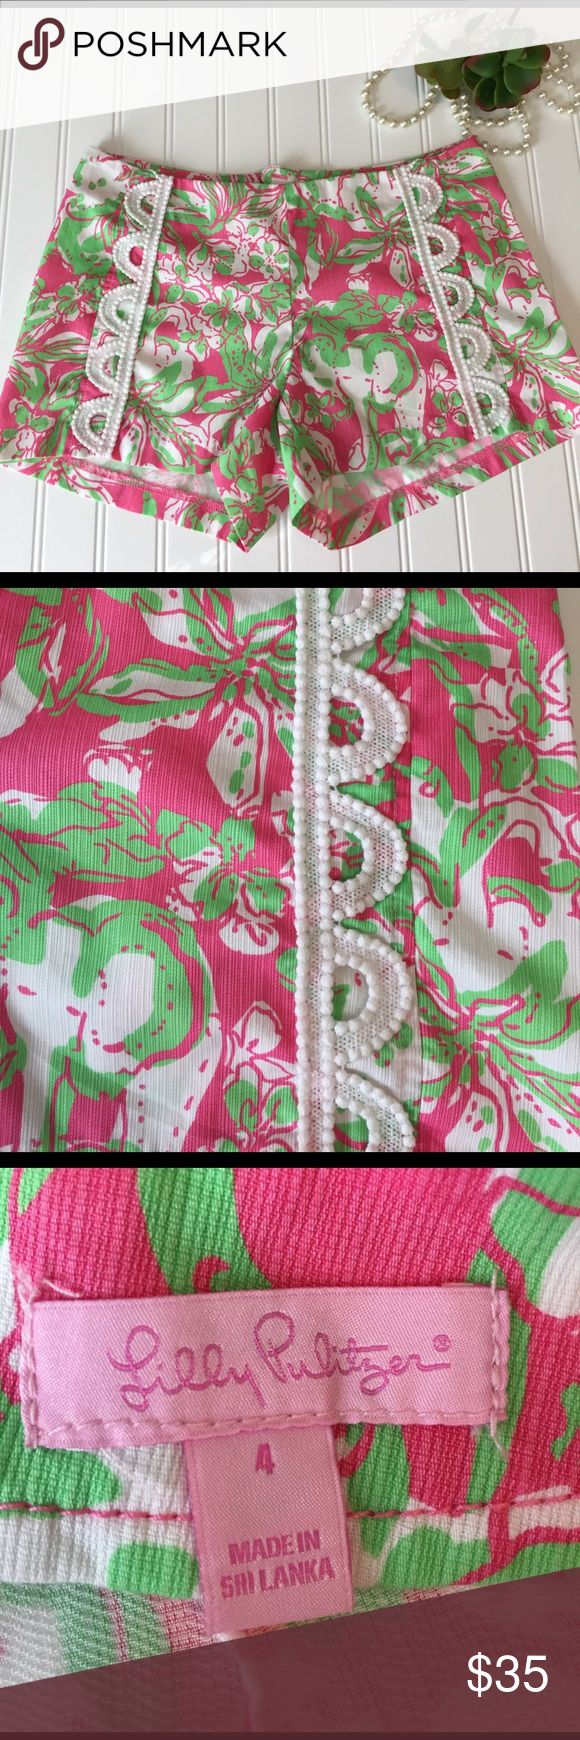 Lilly Pulitzer Shorts Gorgeous pink/green/white fabric with white cotton braiding on both sides of front.  For fit information see stock photo on model. Center hidden zipper in back.  Perfect condition.  From smoke free home. Lilly Pulitzer Shorts